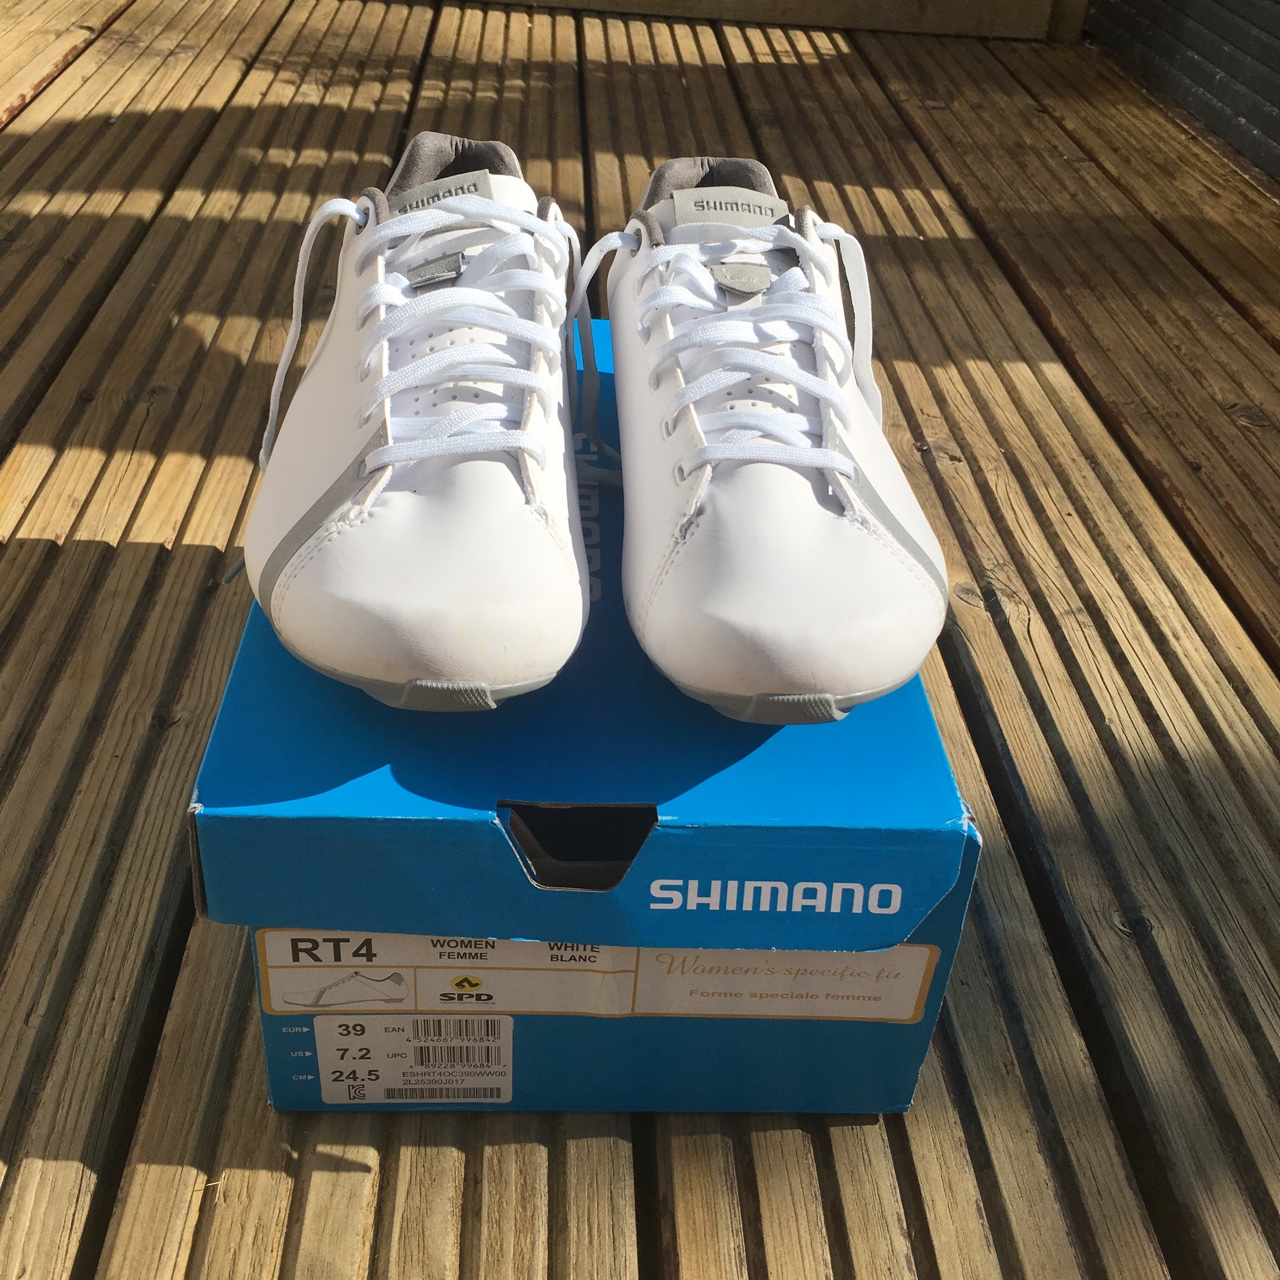 Shimano RT4 Women/'s Bicycle Shoes Size 39 NEW